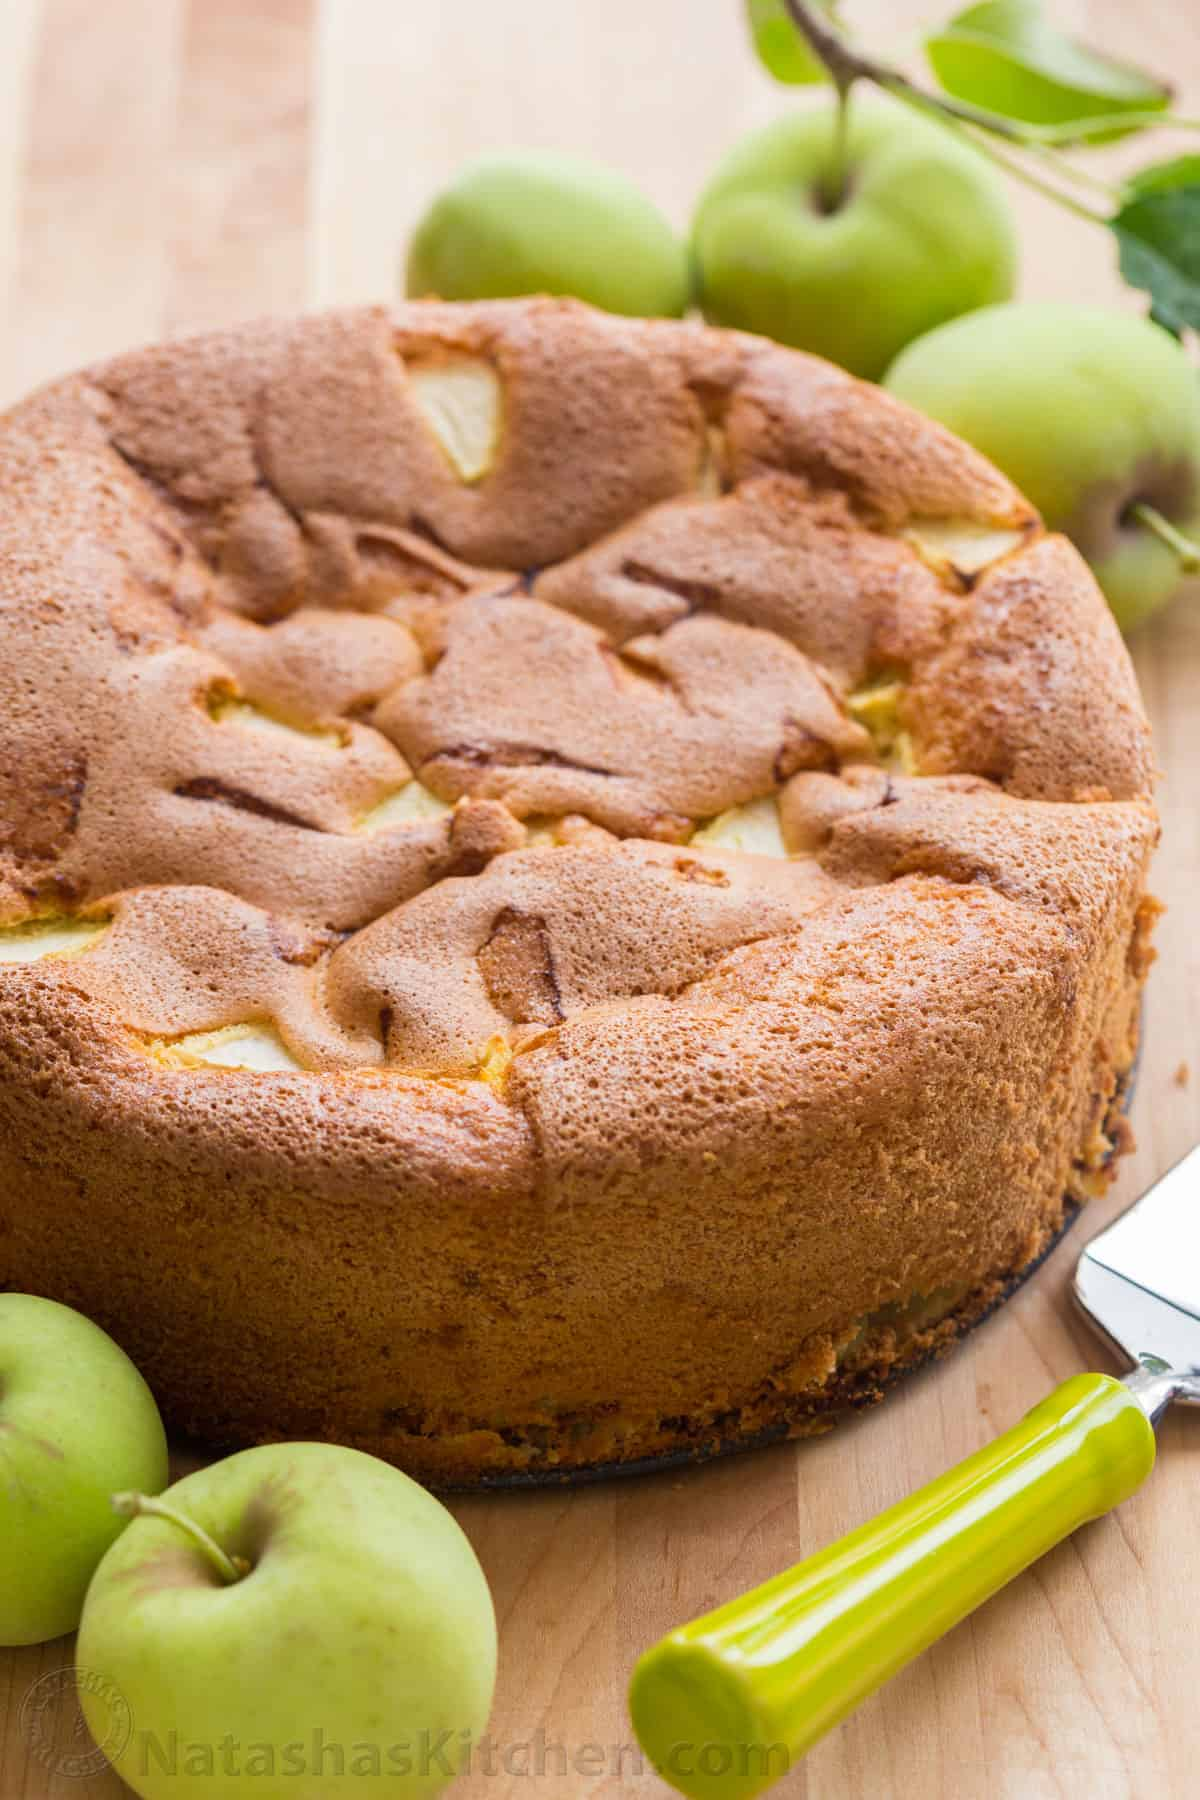 Detailed recipe for Charlotte classic with apples